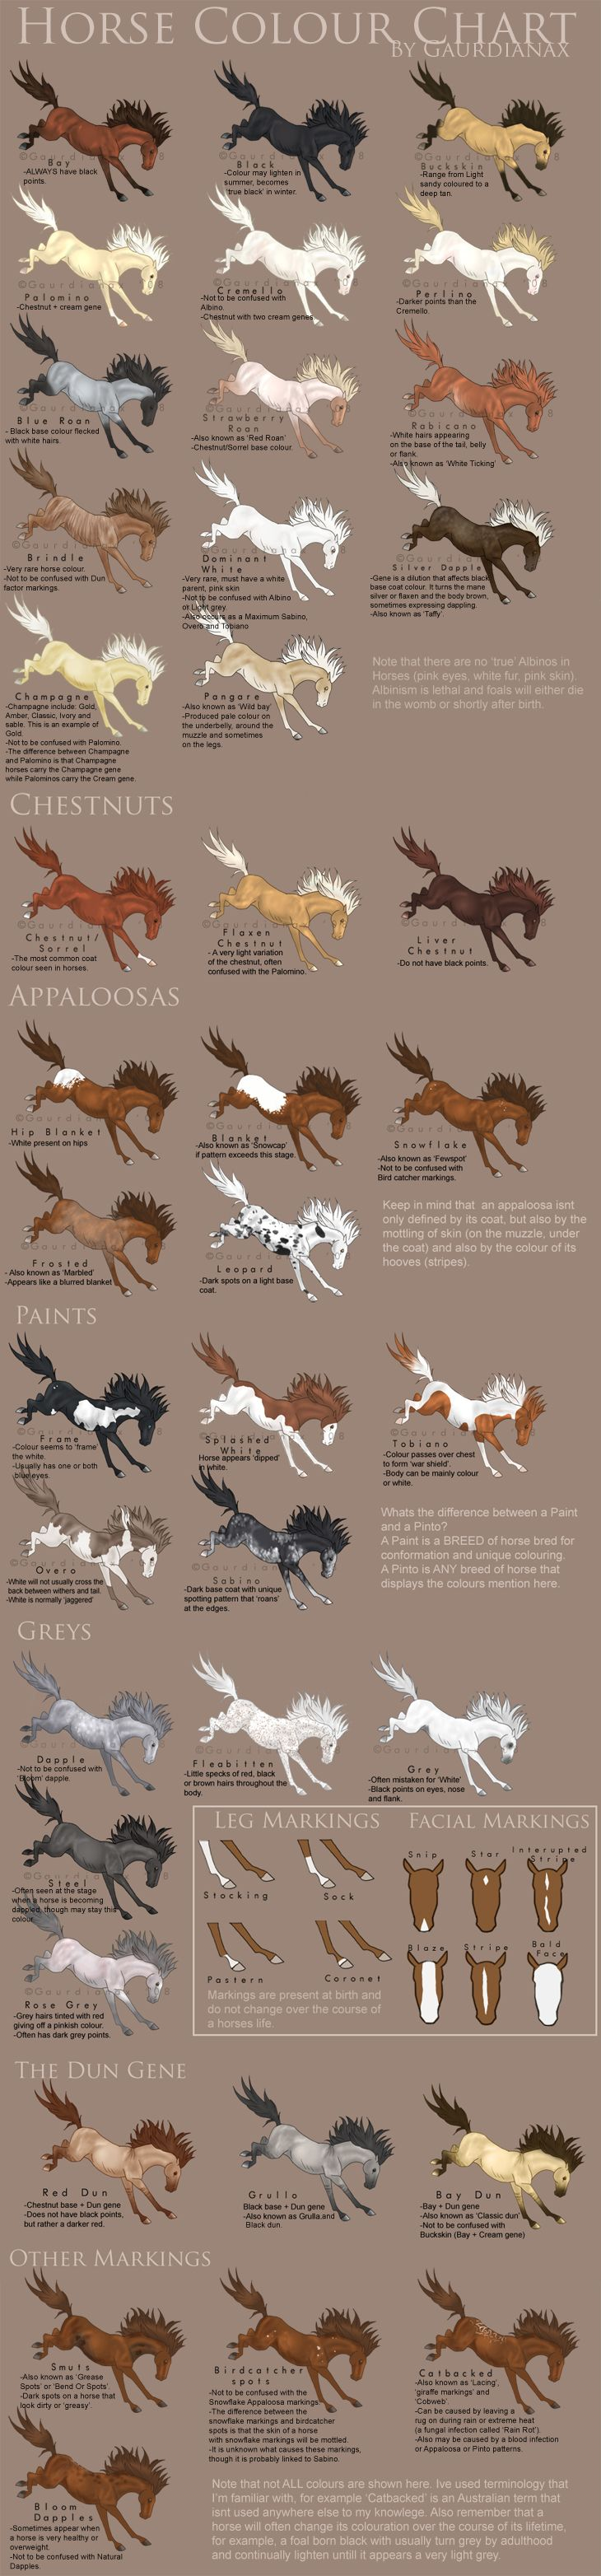 Horse Colour Chart vs 2 by Gaurdianax on deviantART                                                                                                                                                      More